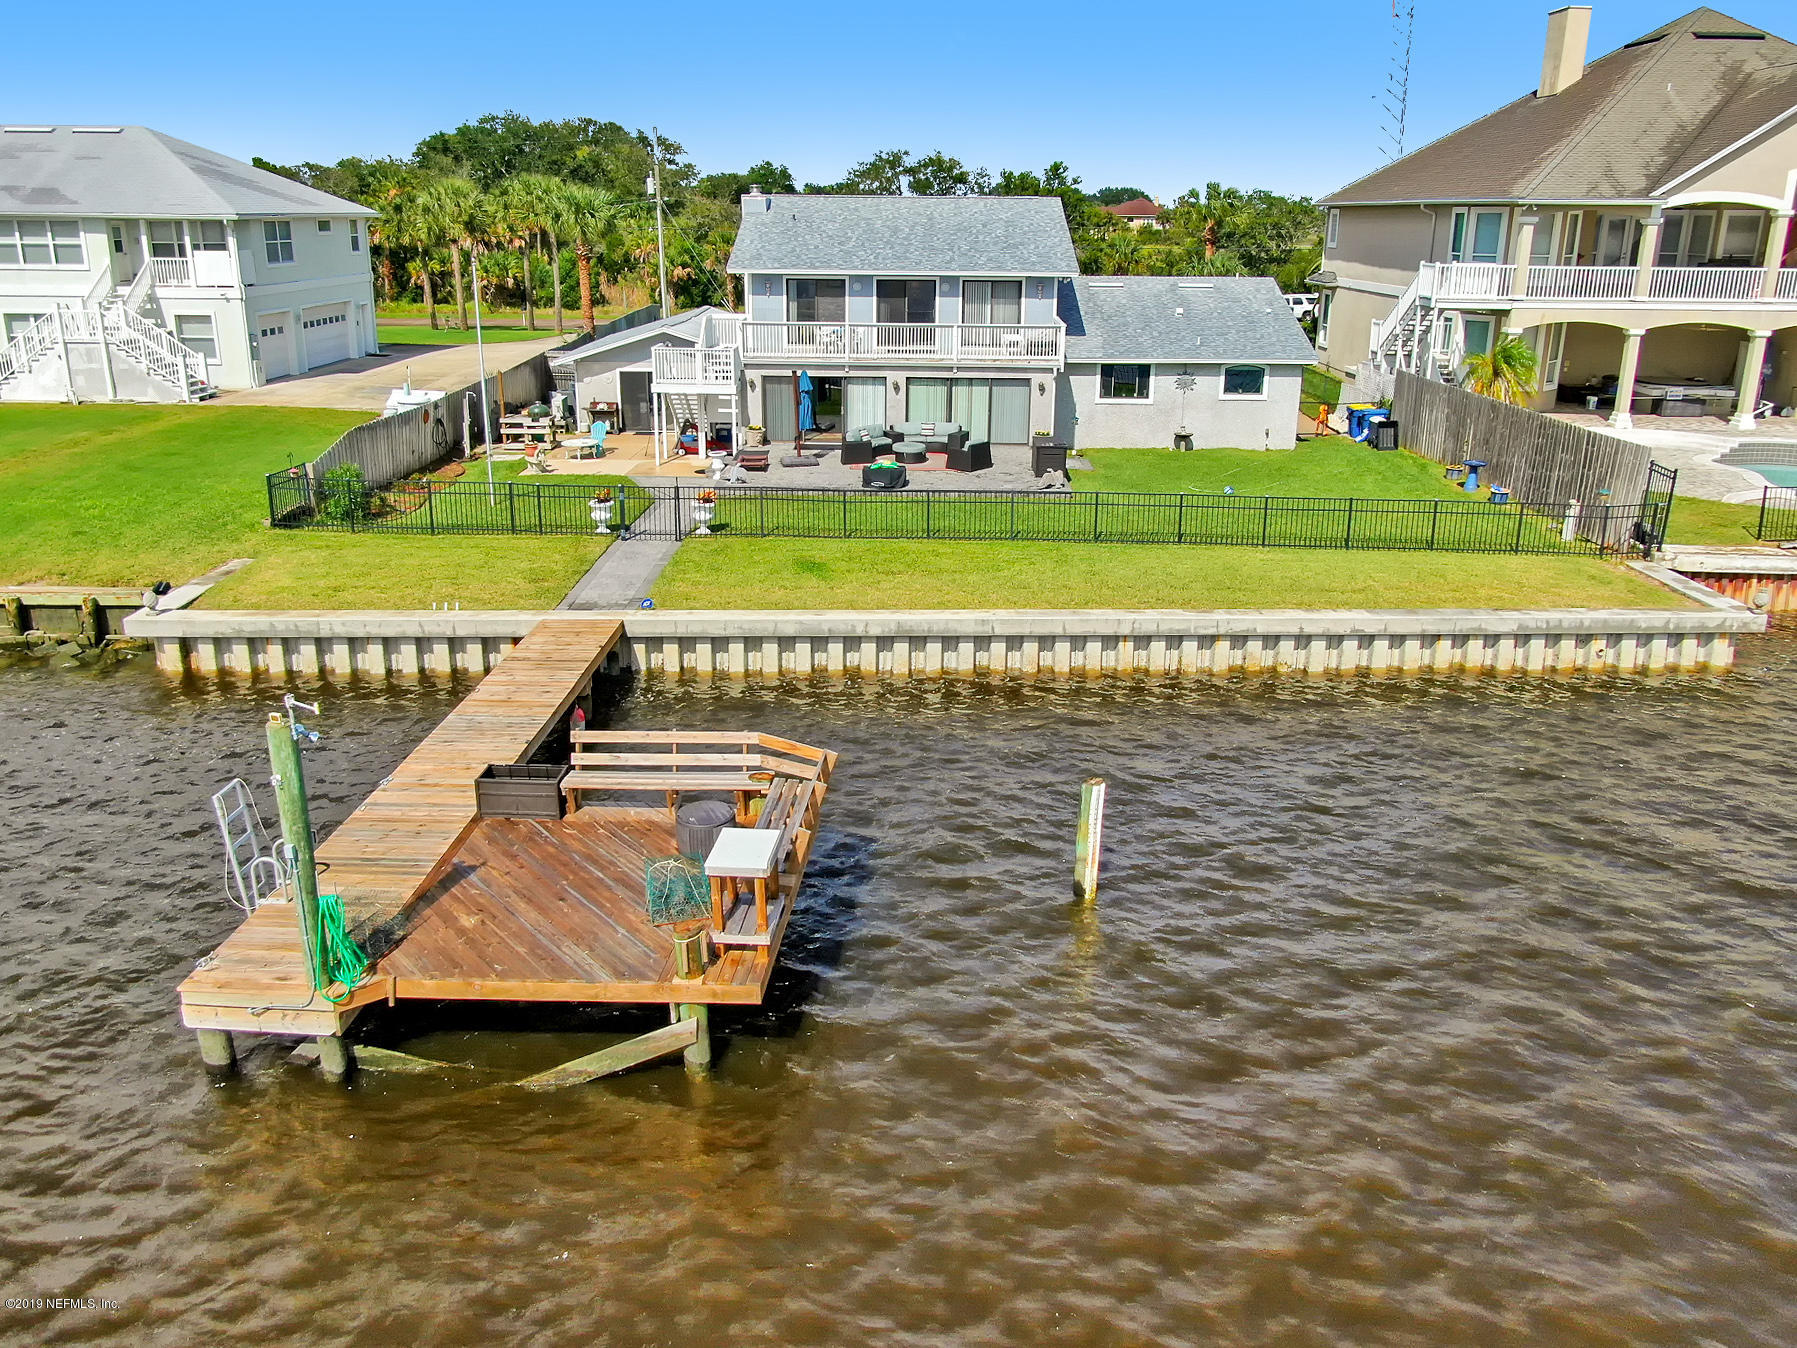 7134 RAMOTH, JACKSONVILLE, FLORIDA 32226, 3 Bedrooms Bedrooms, ,2 BathroomsBathrooms,Residential - single family,For sale,RAMOTH,1022667